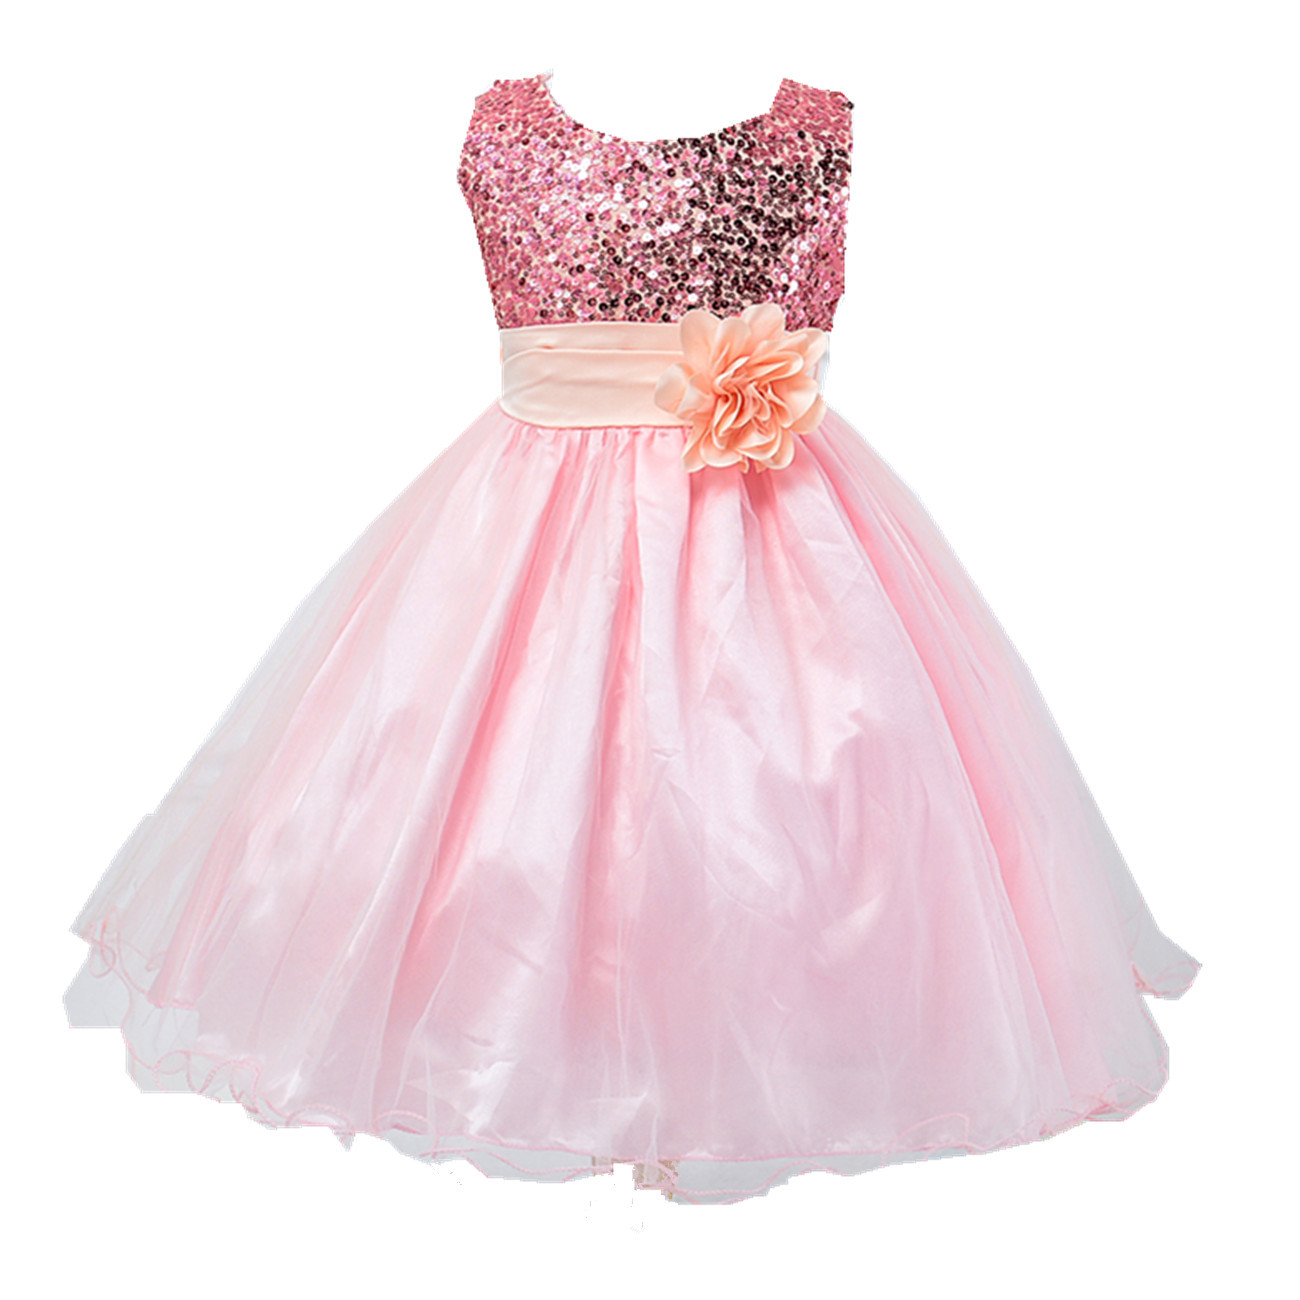 Pics photos girls party dress christmas - Christmas Girls Party Dress Sequined Long With Belt Flower Child Dresses Toddler To Teen Age Size